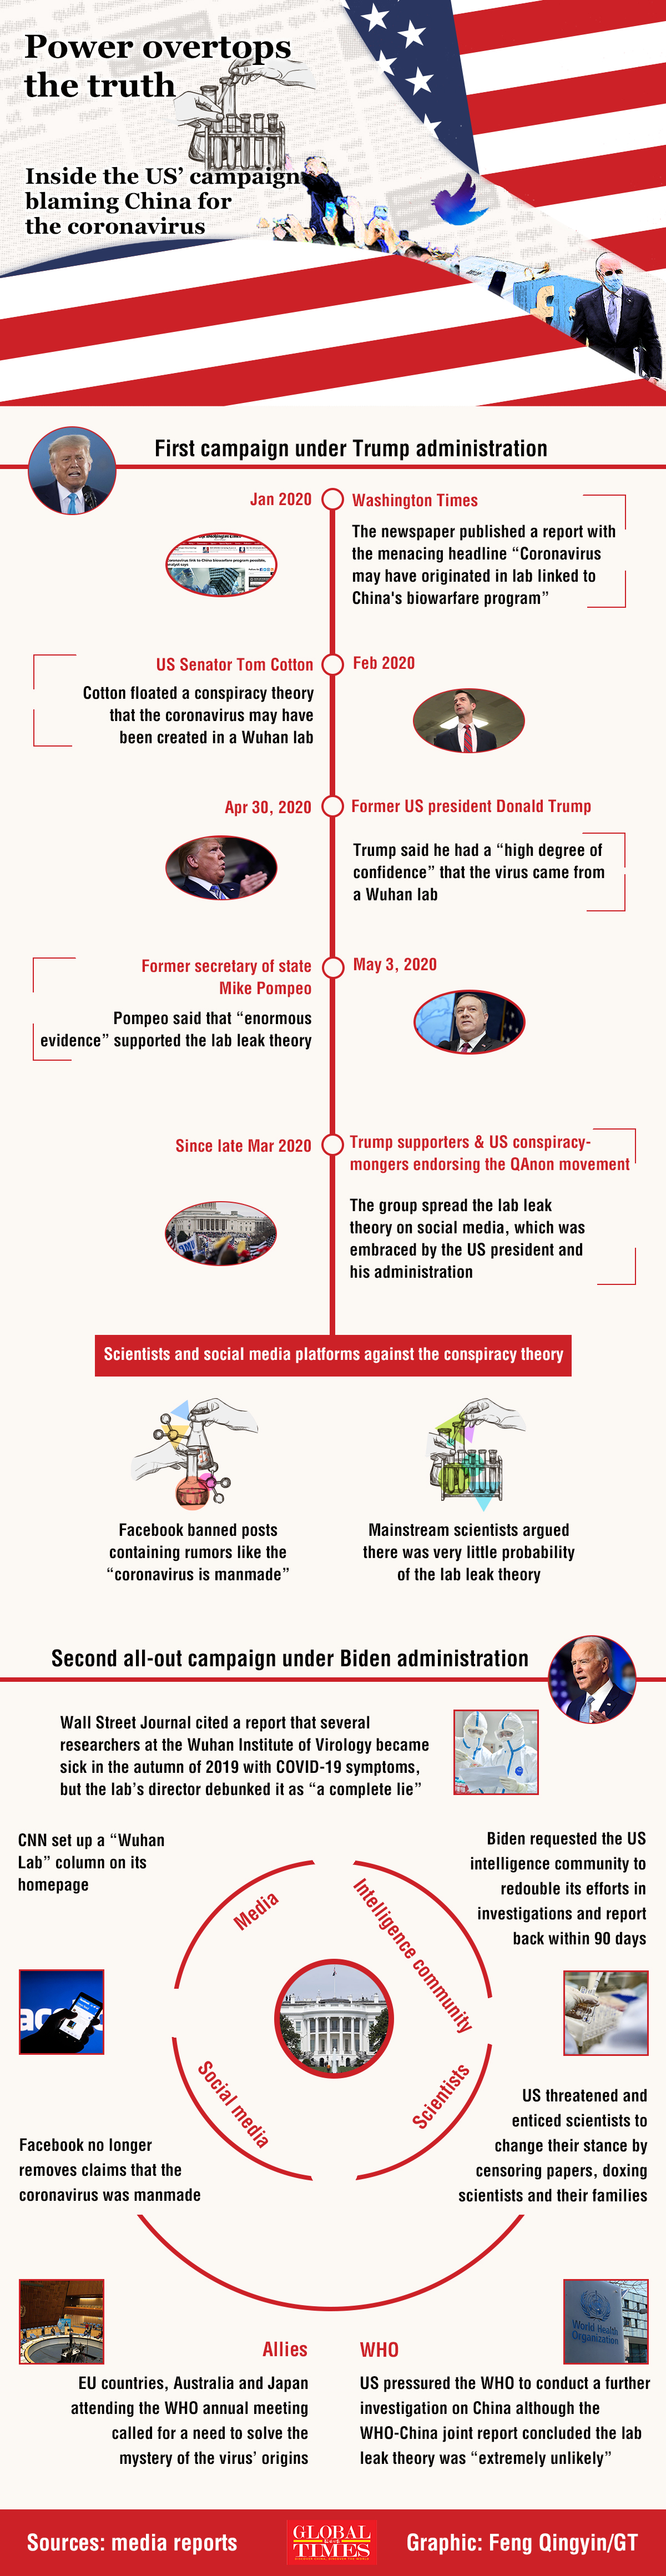 What steps did the US take to stigmatize China on virus origins tracing, and who is behind it?GT reveals four-step US misinformation campaign on the virus origins tracing. Graphic: Feng Qingyin/GT